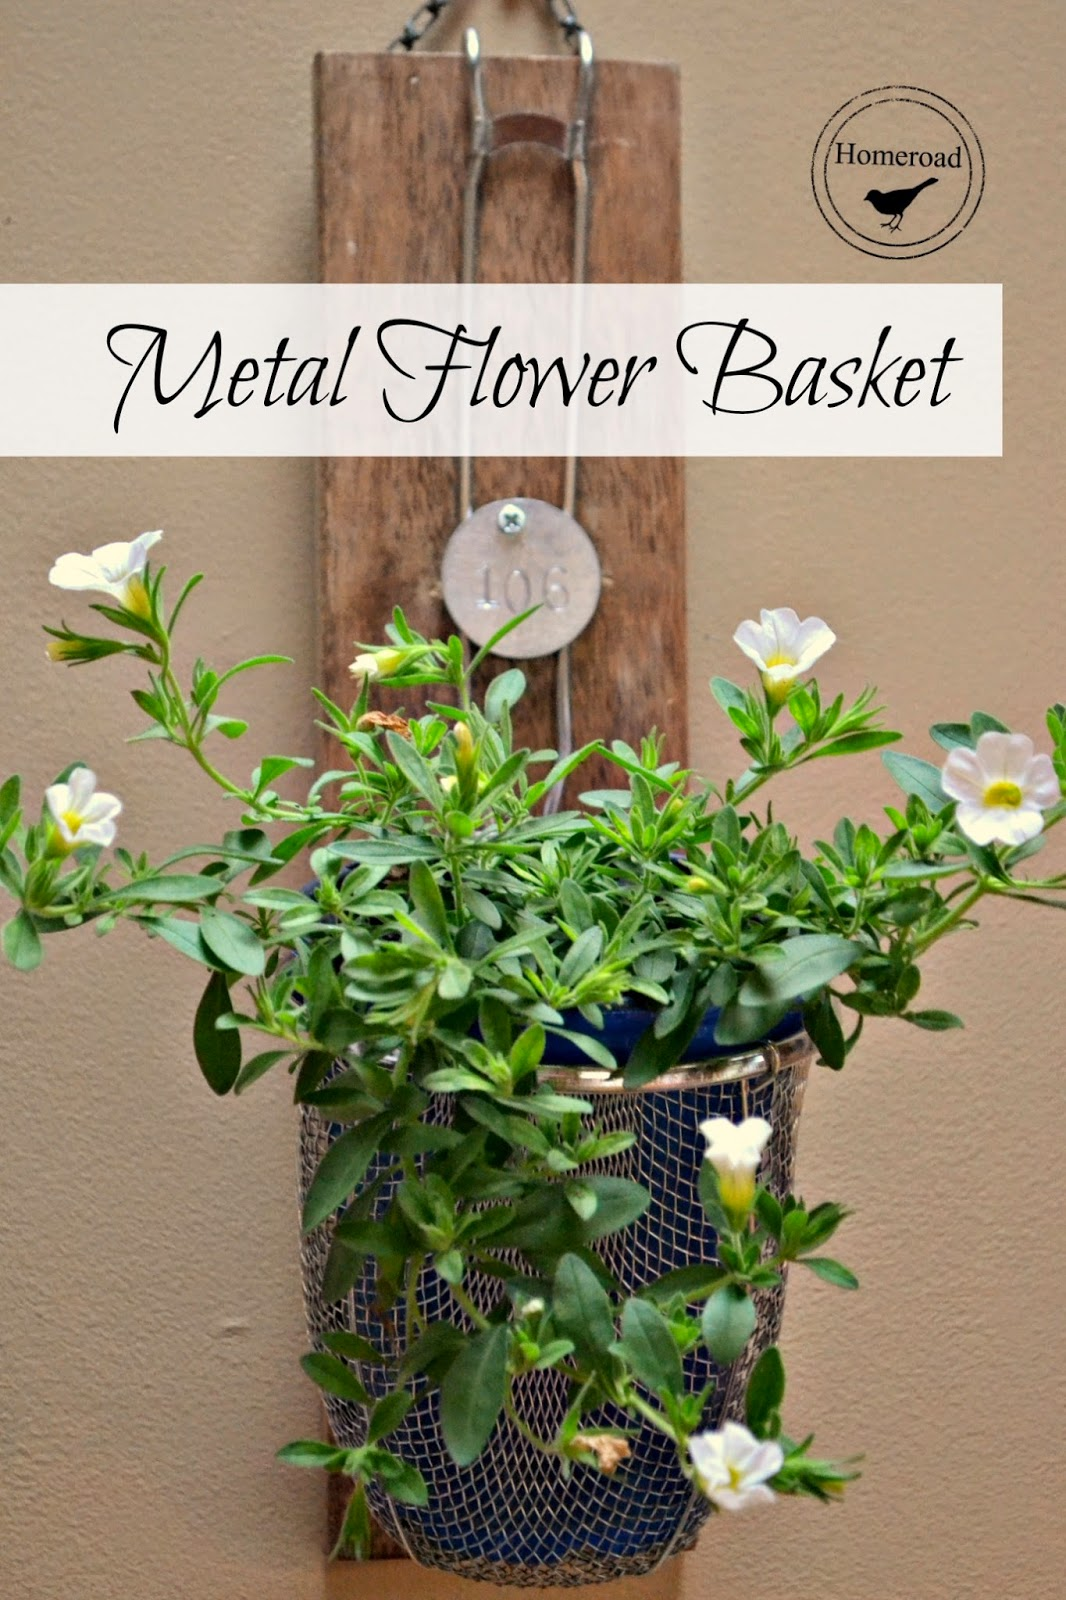 repurposed metal flower basket www.homeroad.net